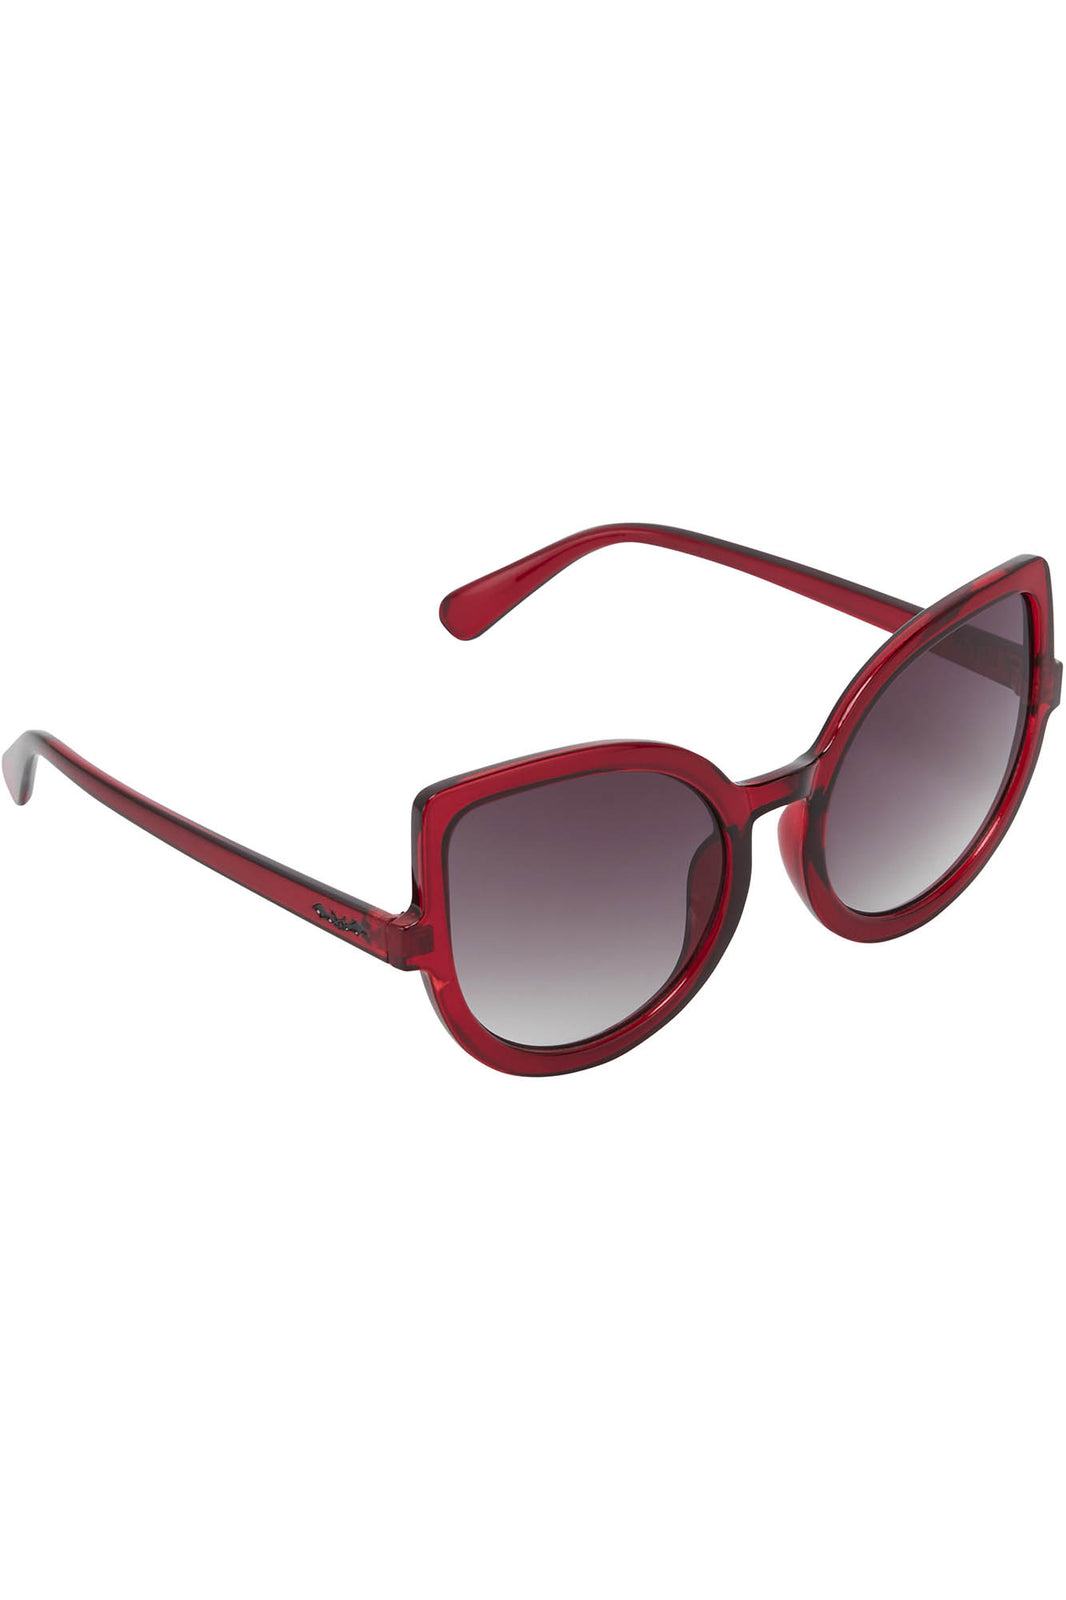 Space Kitty Sunglasses [CHERRY]